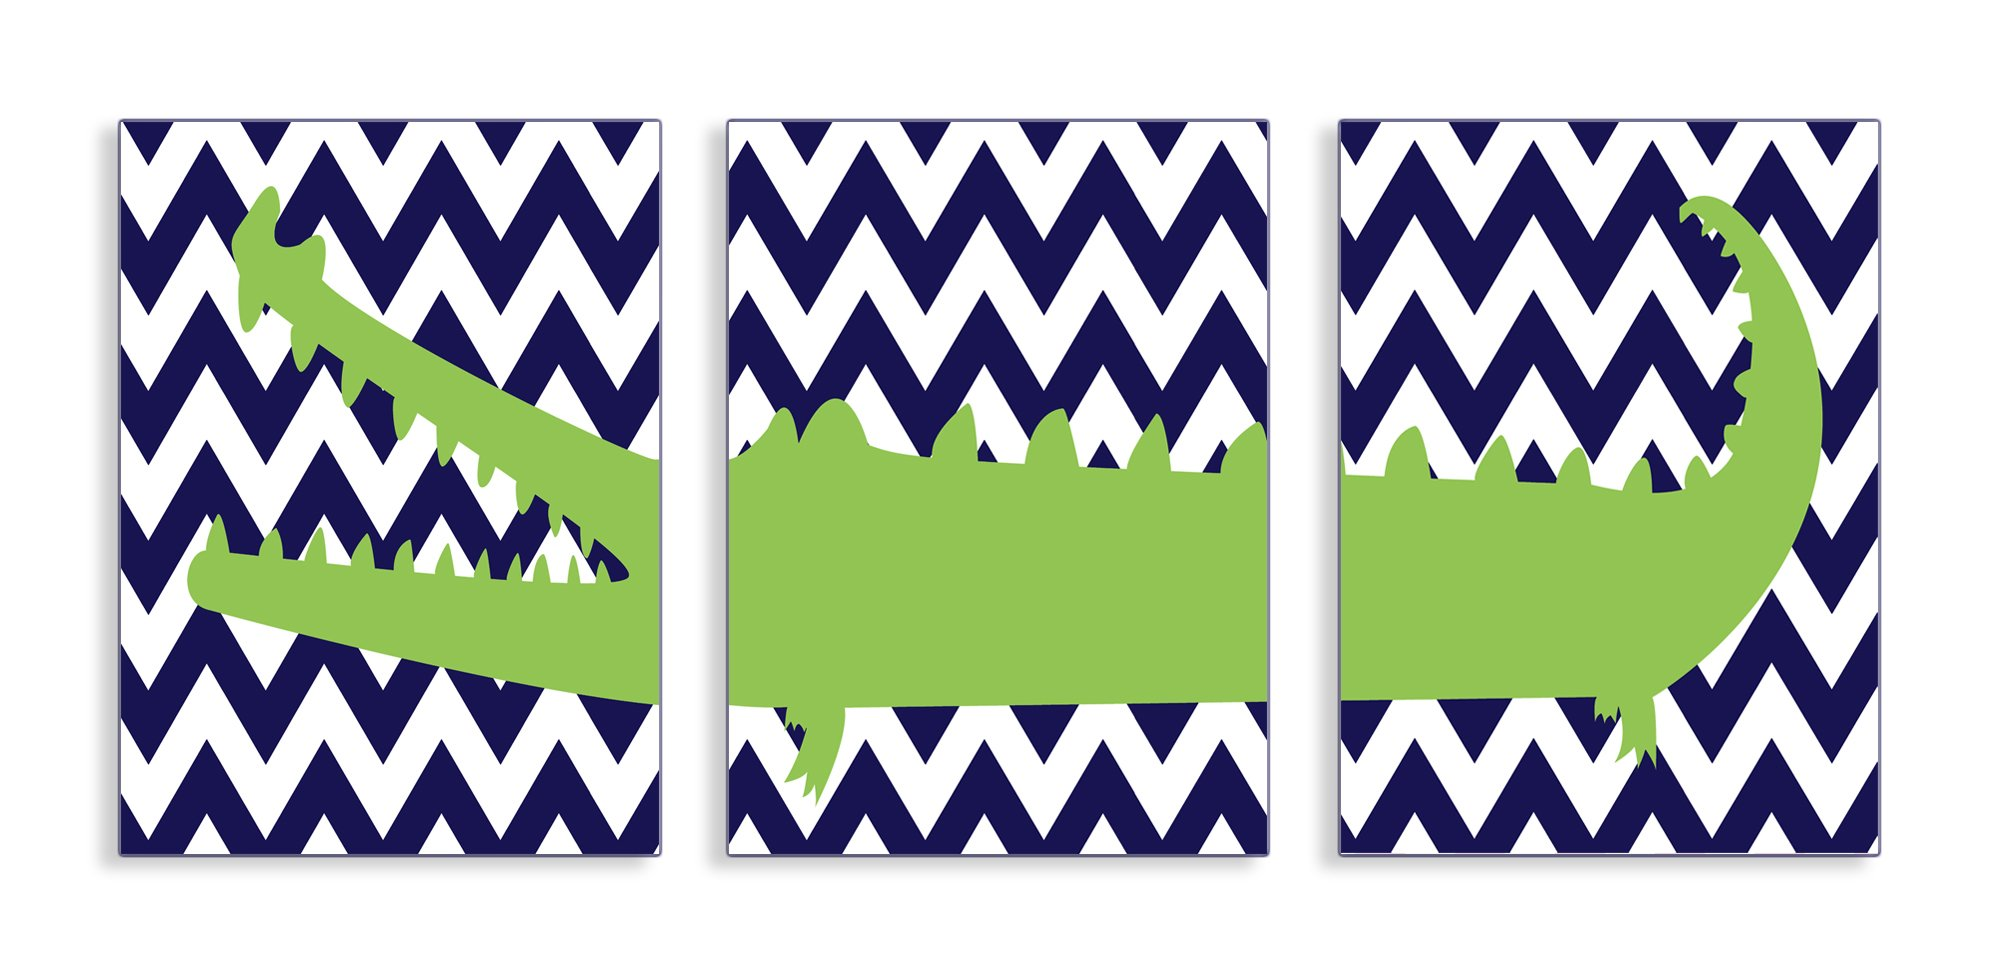 The Kids Room by Stupell Alligator On Navy Chevron 3-Pc Rectangle Wall Plaque Set, 11 x 0.5 x 15, Proudly Made in USA by The Kids Room by Stupell